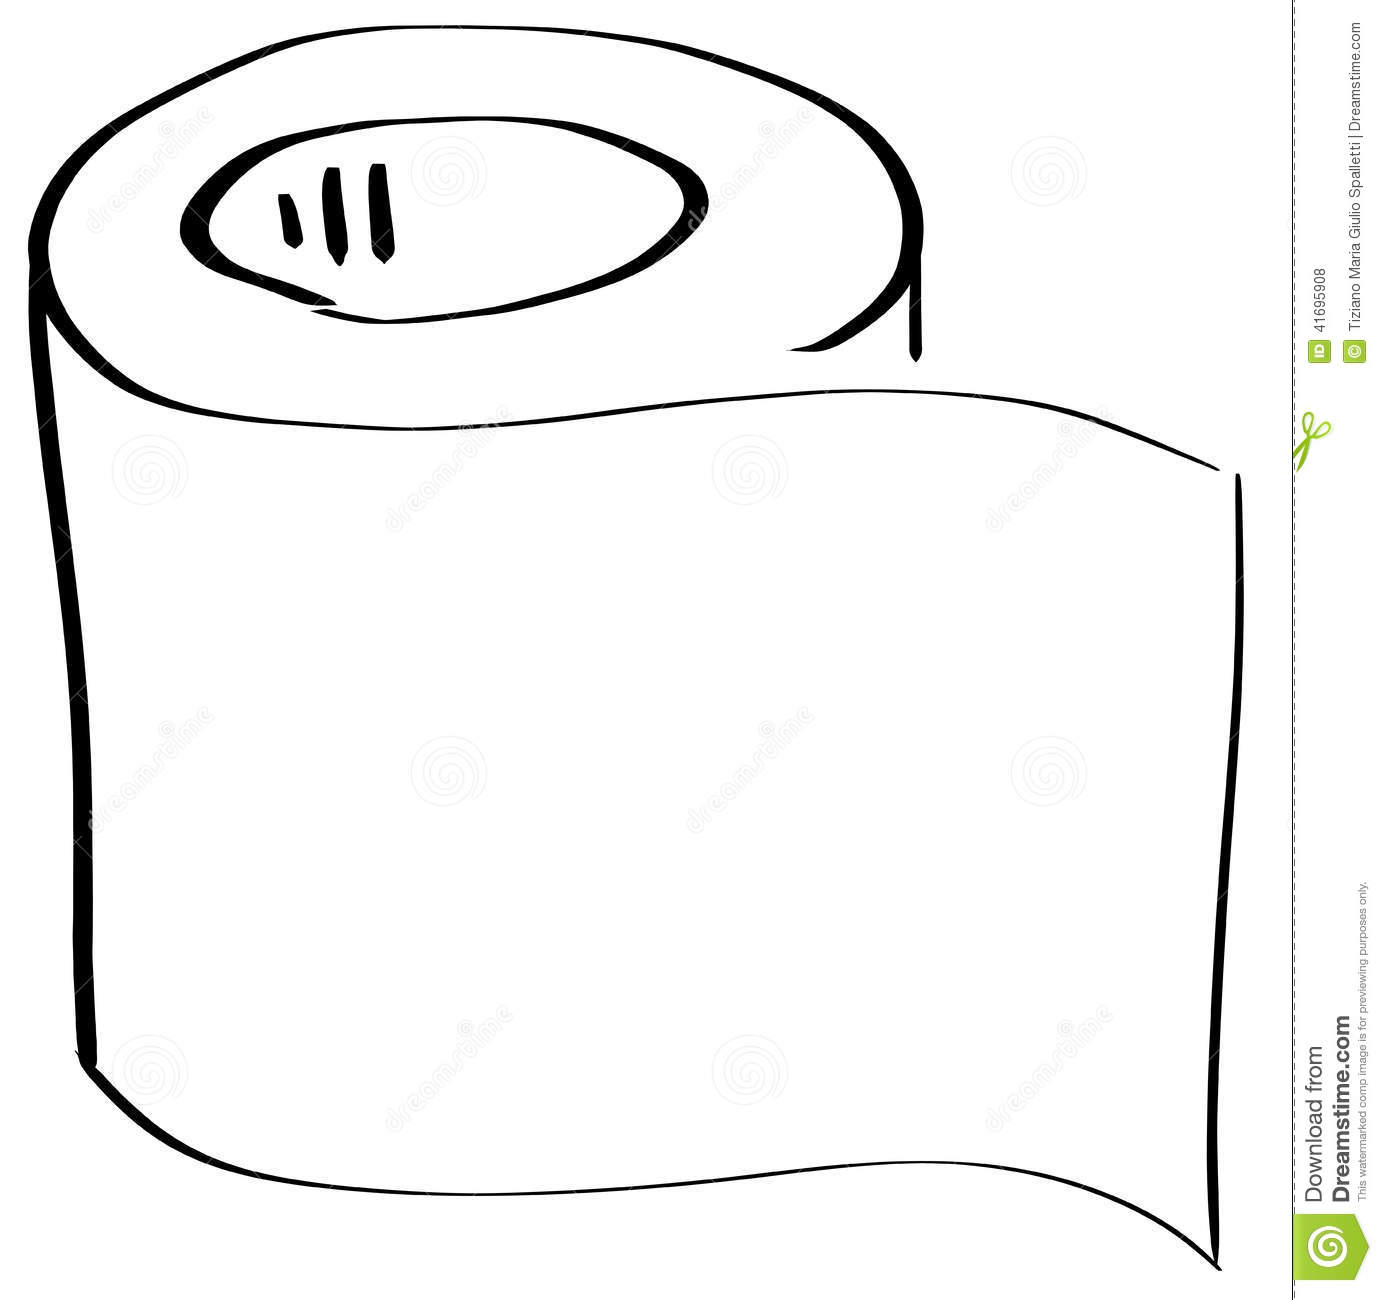 Stylized Roll Of Toilet Paper Isolated Stock Illustration